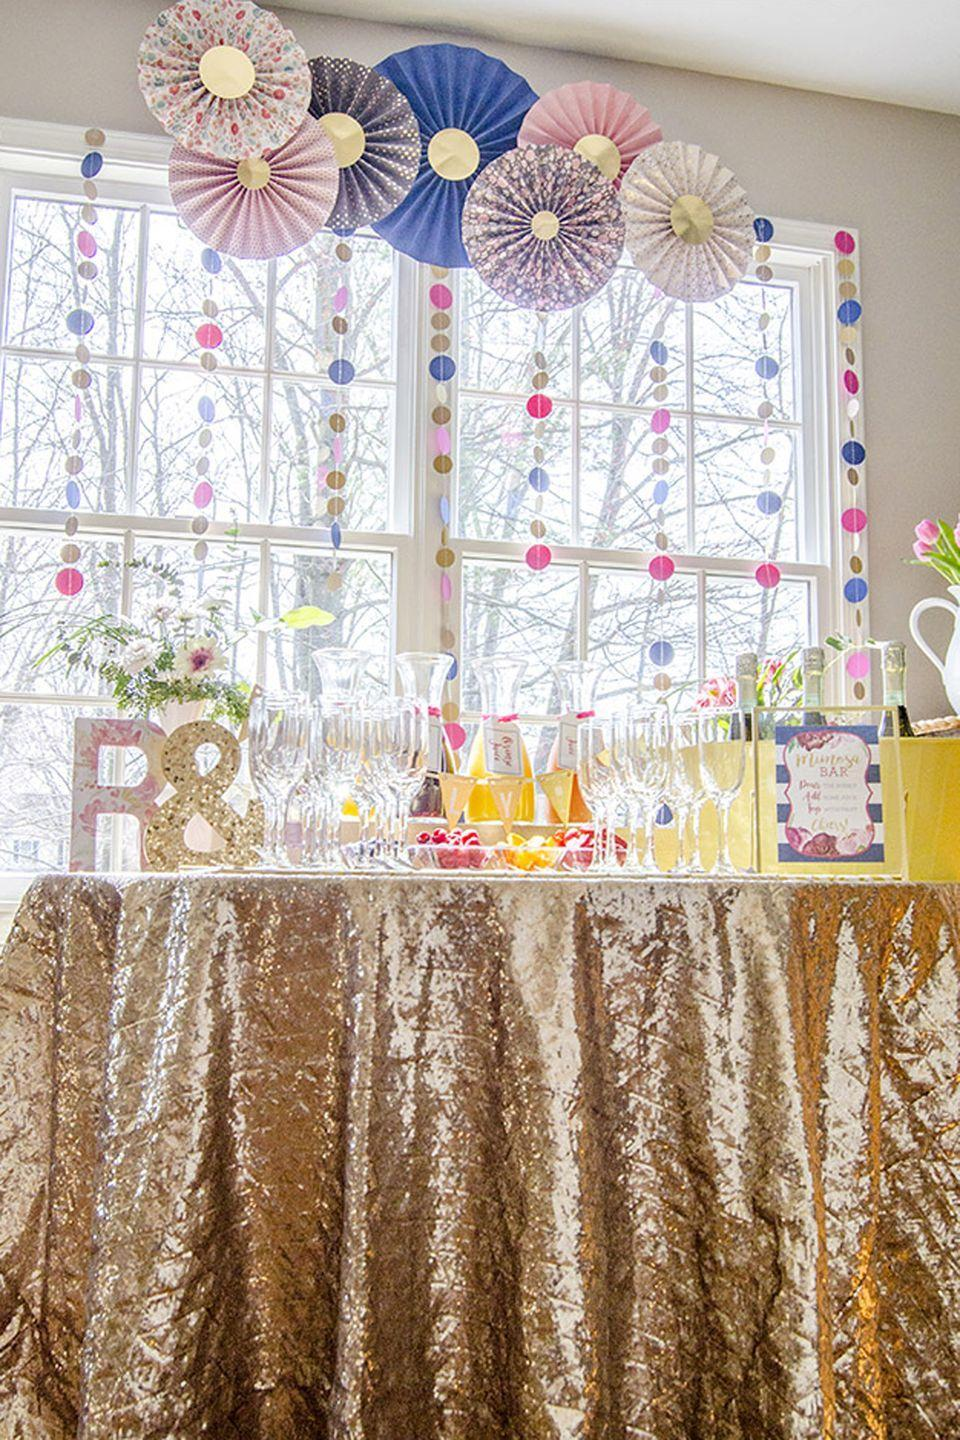 """<p> Dress up your bar with a sparkly tablecloth. A paper garland and glittery rosettes will make it a focal point of any party. </p><p>See more at <a href=""""https://www.unoriginalmom.com/how-to-create-a-bridal-shower-mimosa-bar/"""" rel=""""nofollow noopener"""" target=""""_blank"""" data-ylk=""""slk:Unoriginal Mom"""" class=""""link rapid-noclick-resp"""">Unoriginal Mom</a>.<br></p>"""